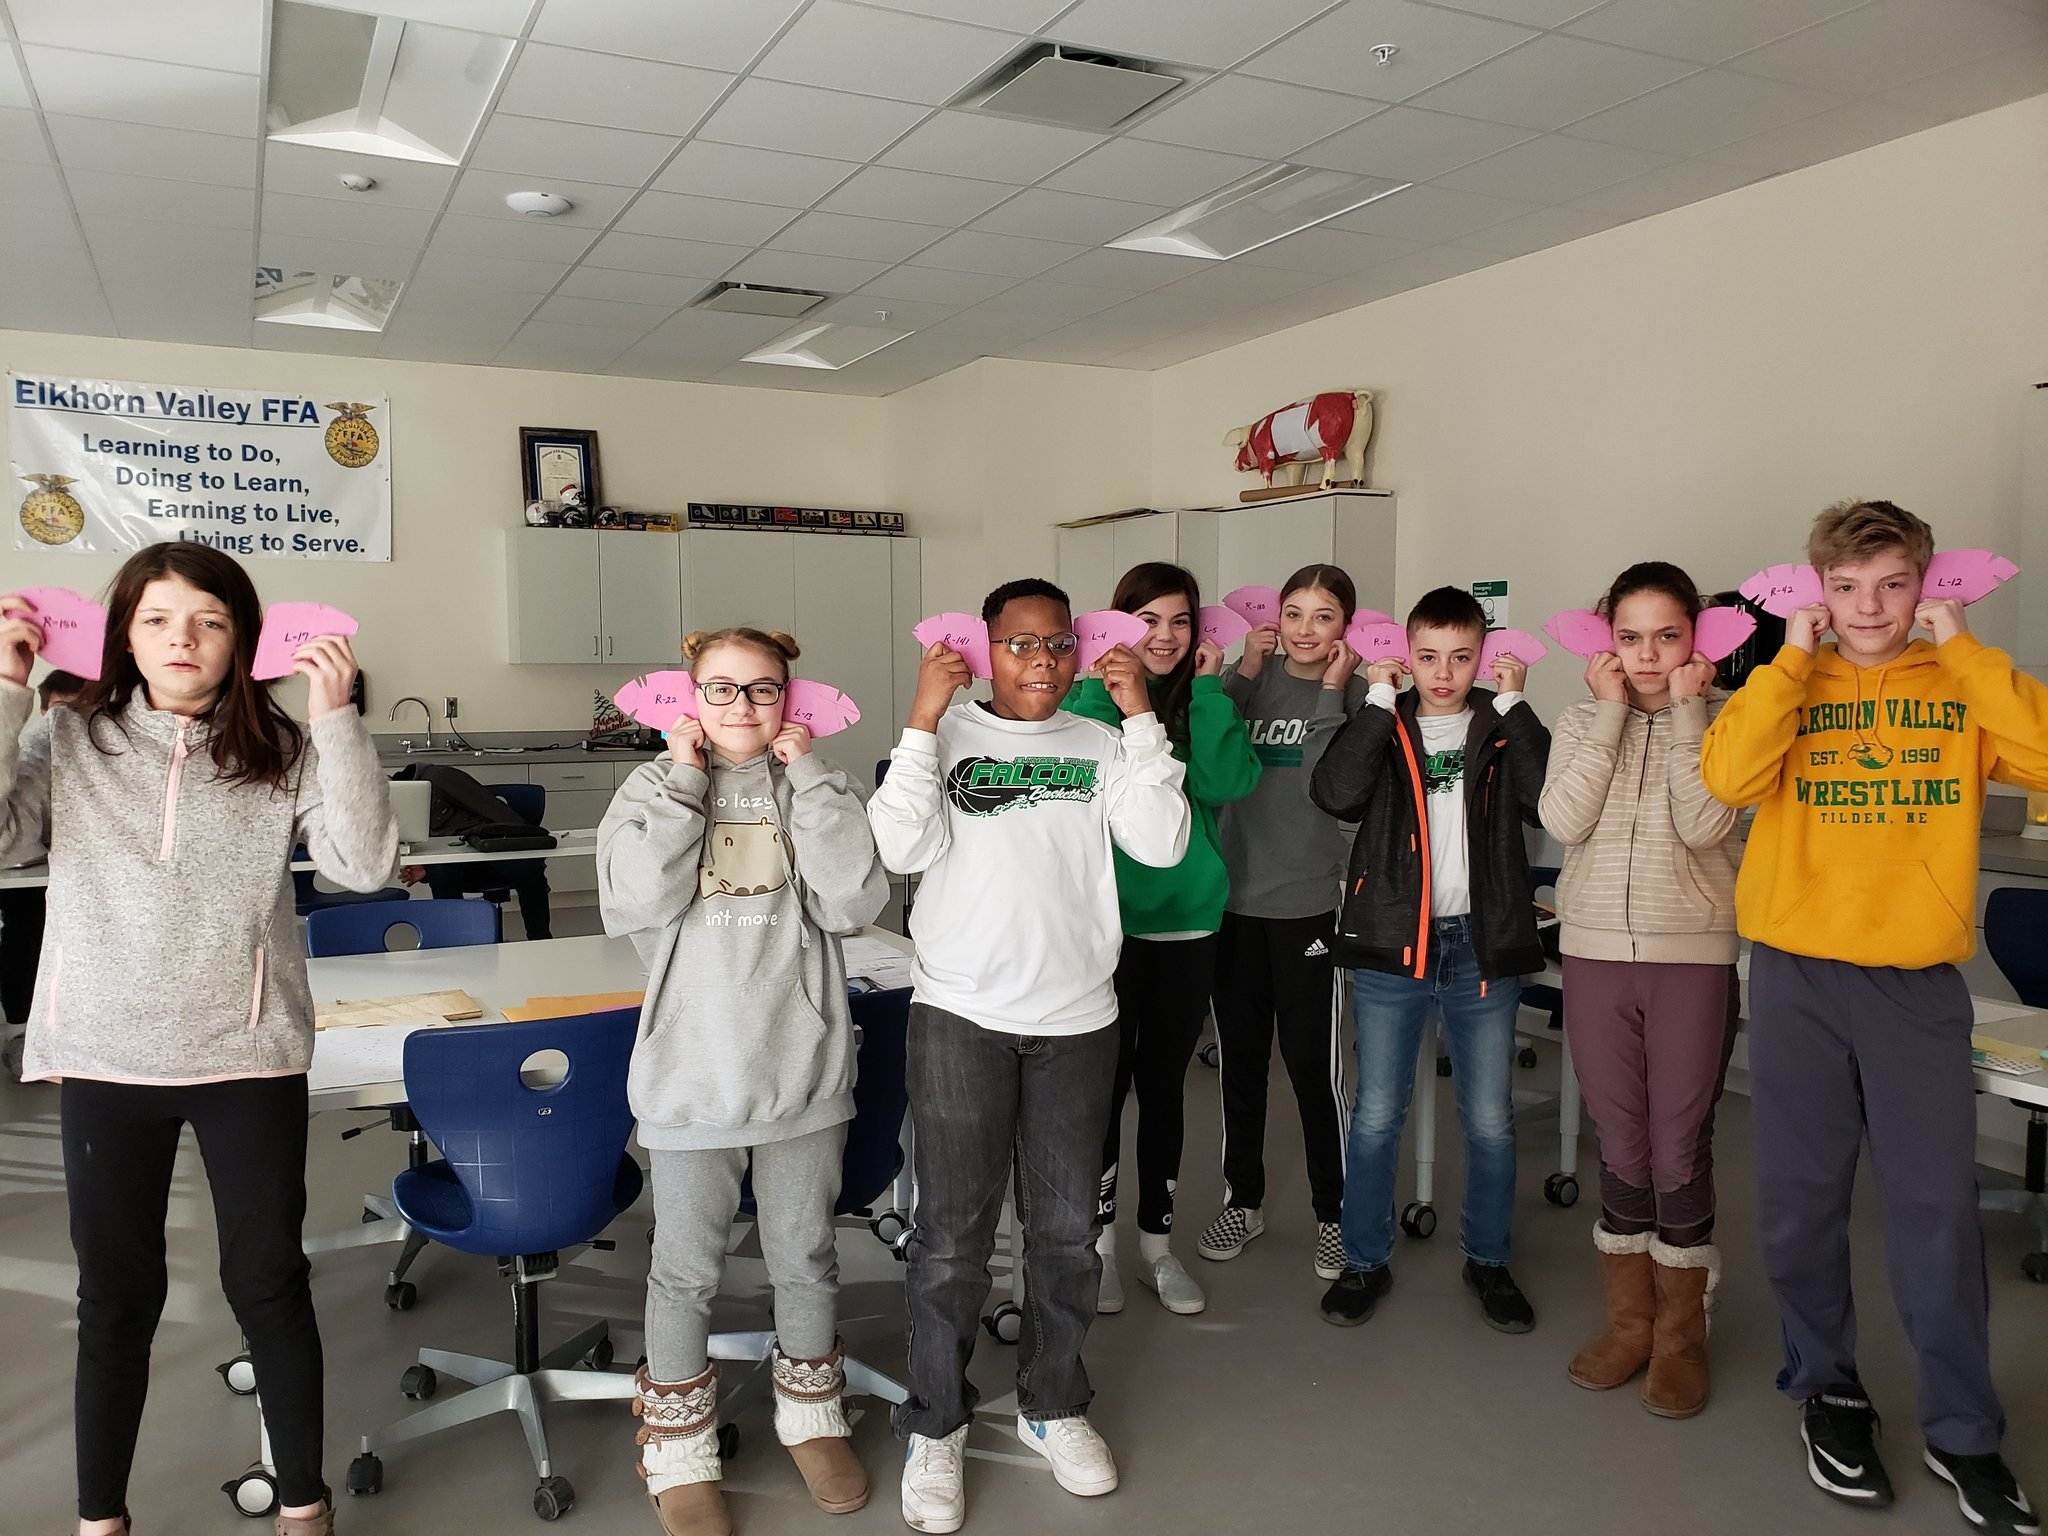 Jr. High Ag Exploratory learned how identify swine notches of pigs